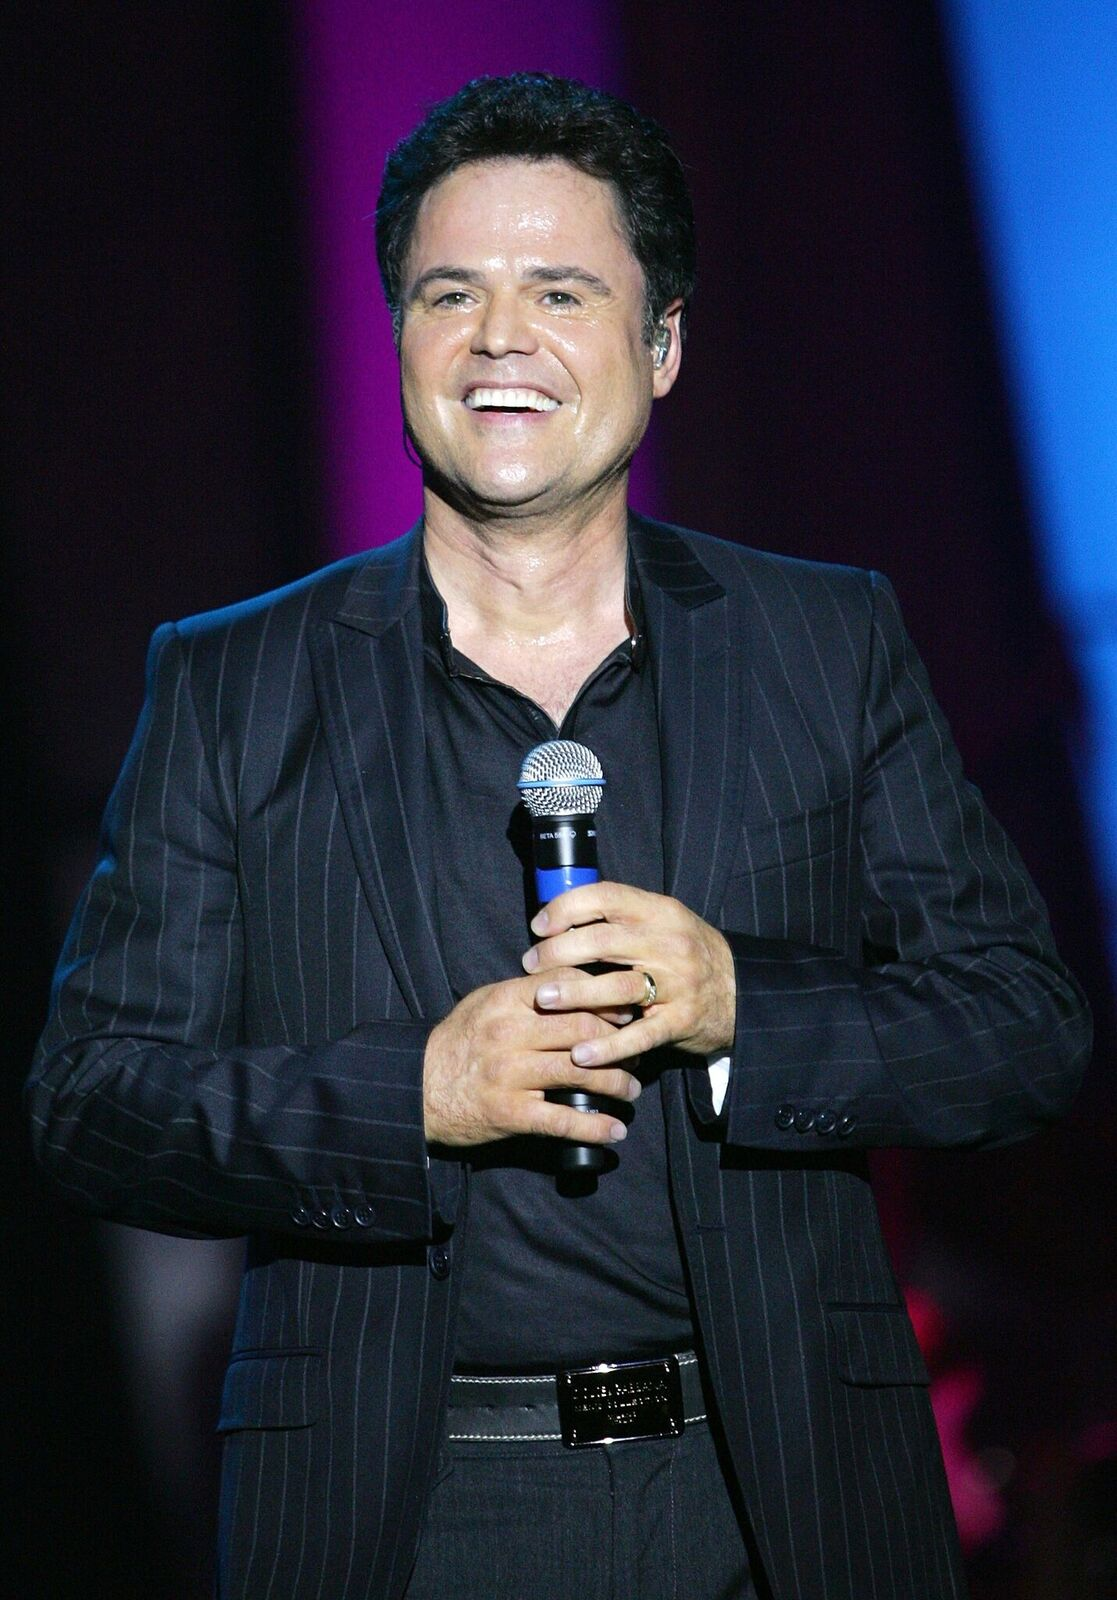 Entertainer Donny Osmond performs at the Orleans Hotel & Casino August 14, 2007 in Las Vegas, Nevada | Photo: Getty Images